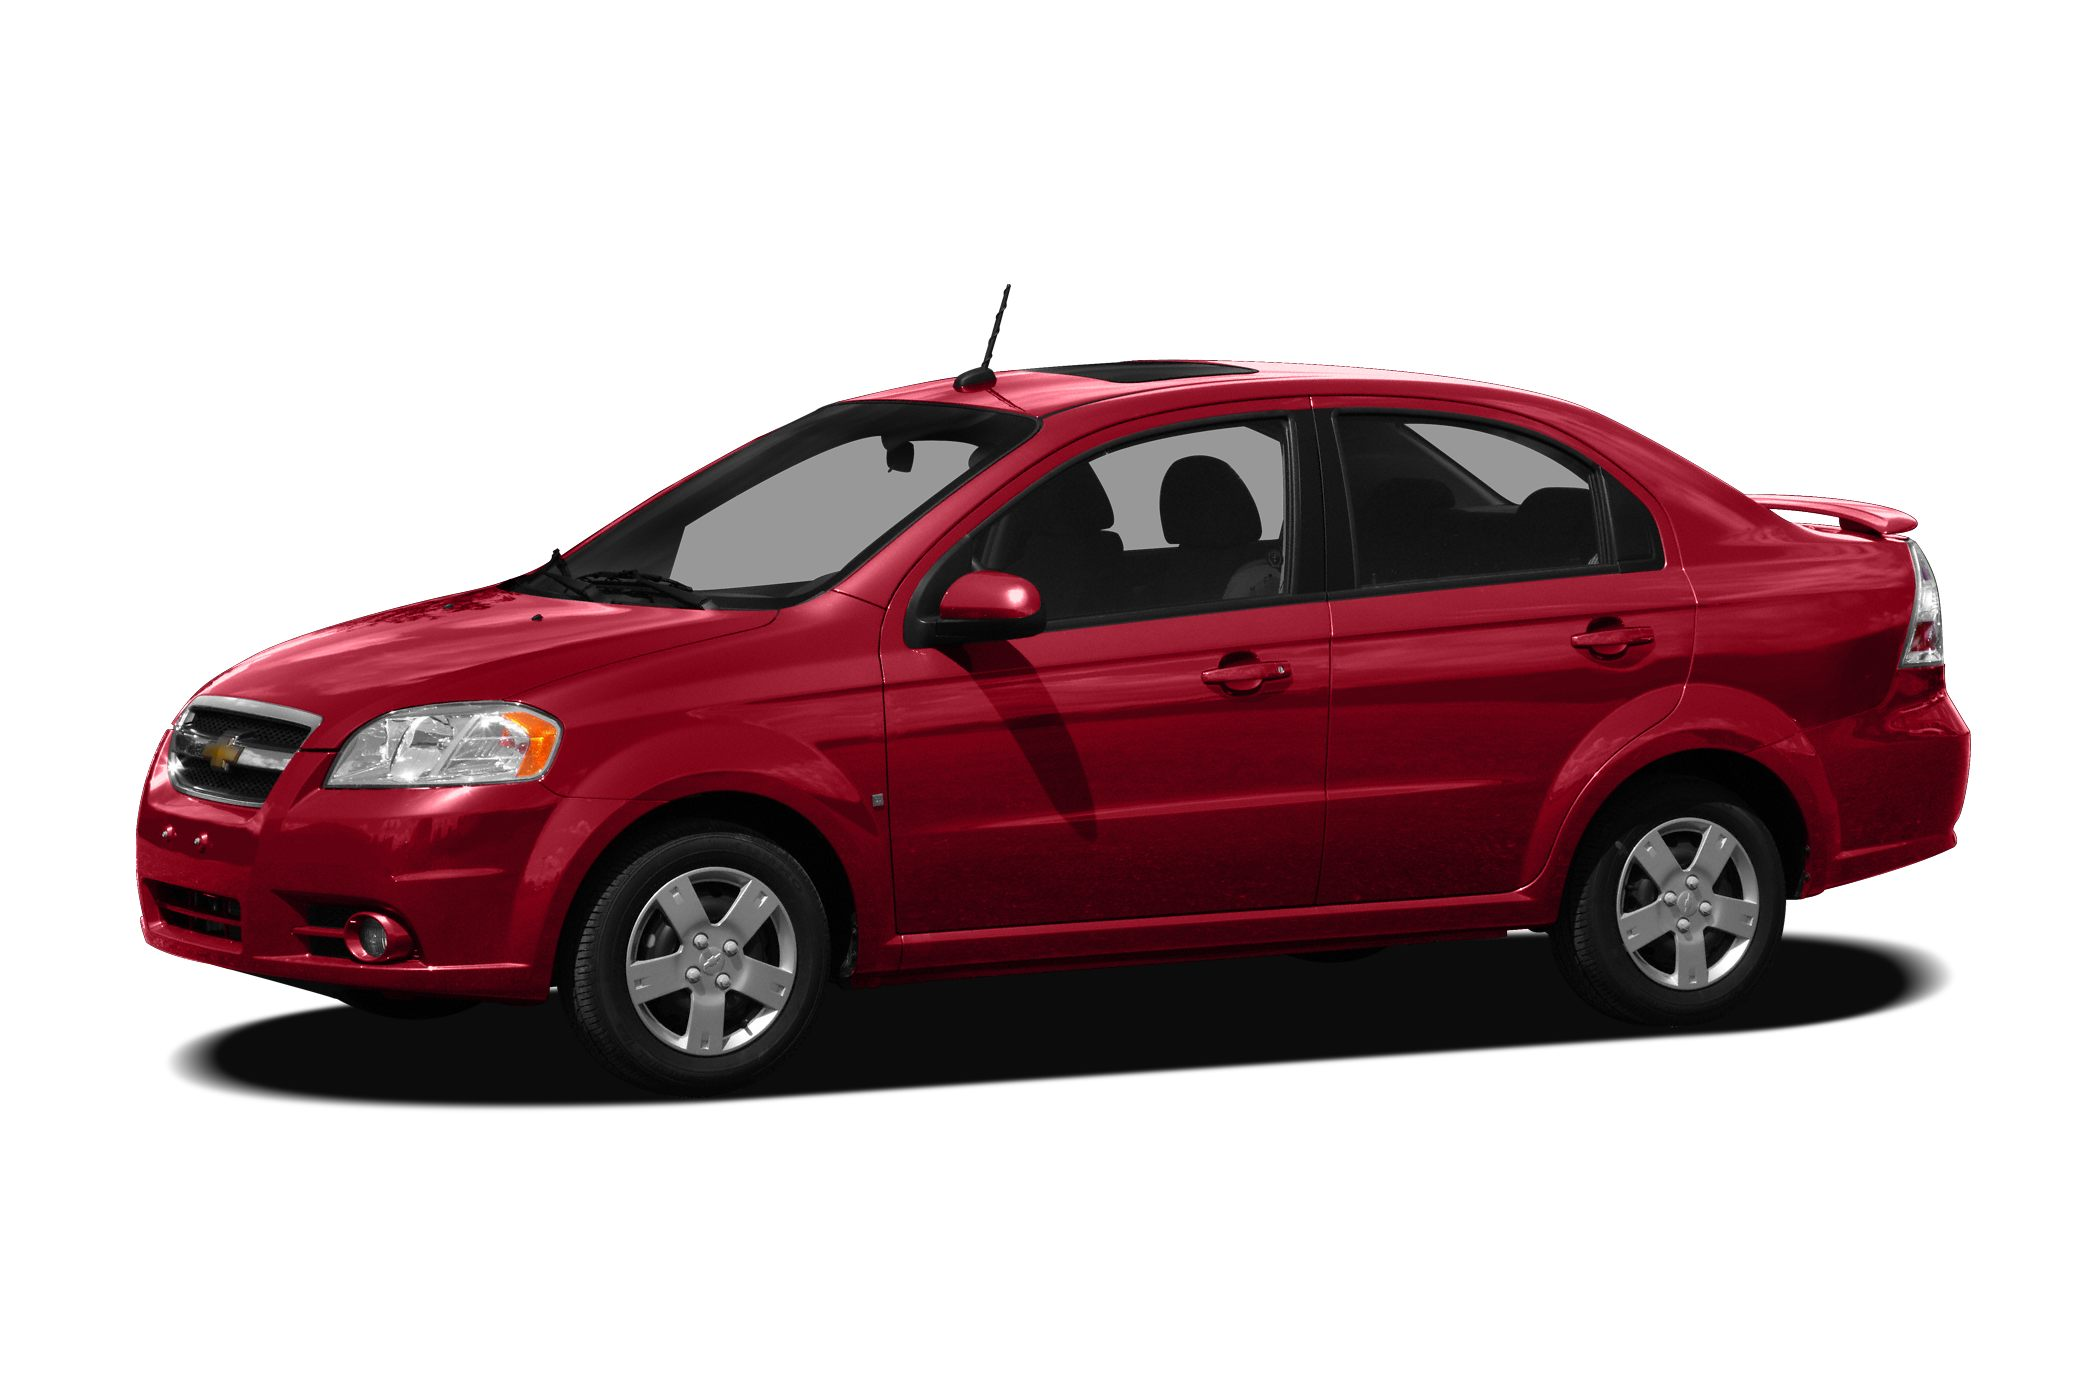 2011 Chevrolet Aveo Owner Reviews and Ratings